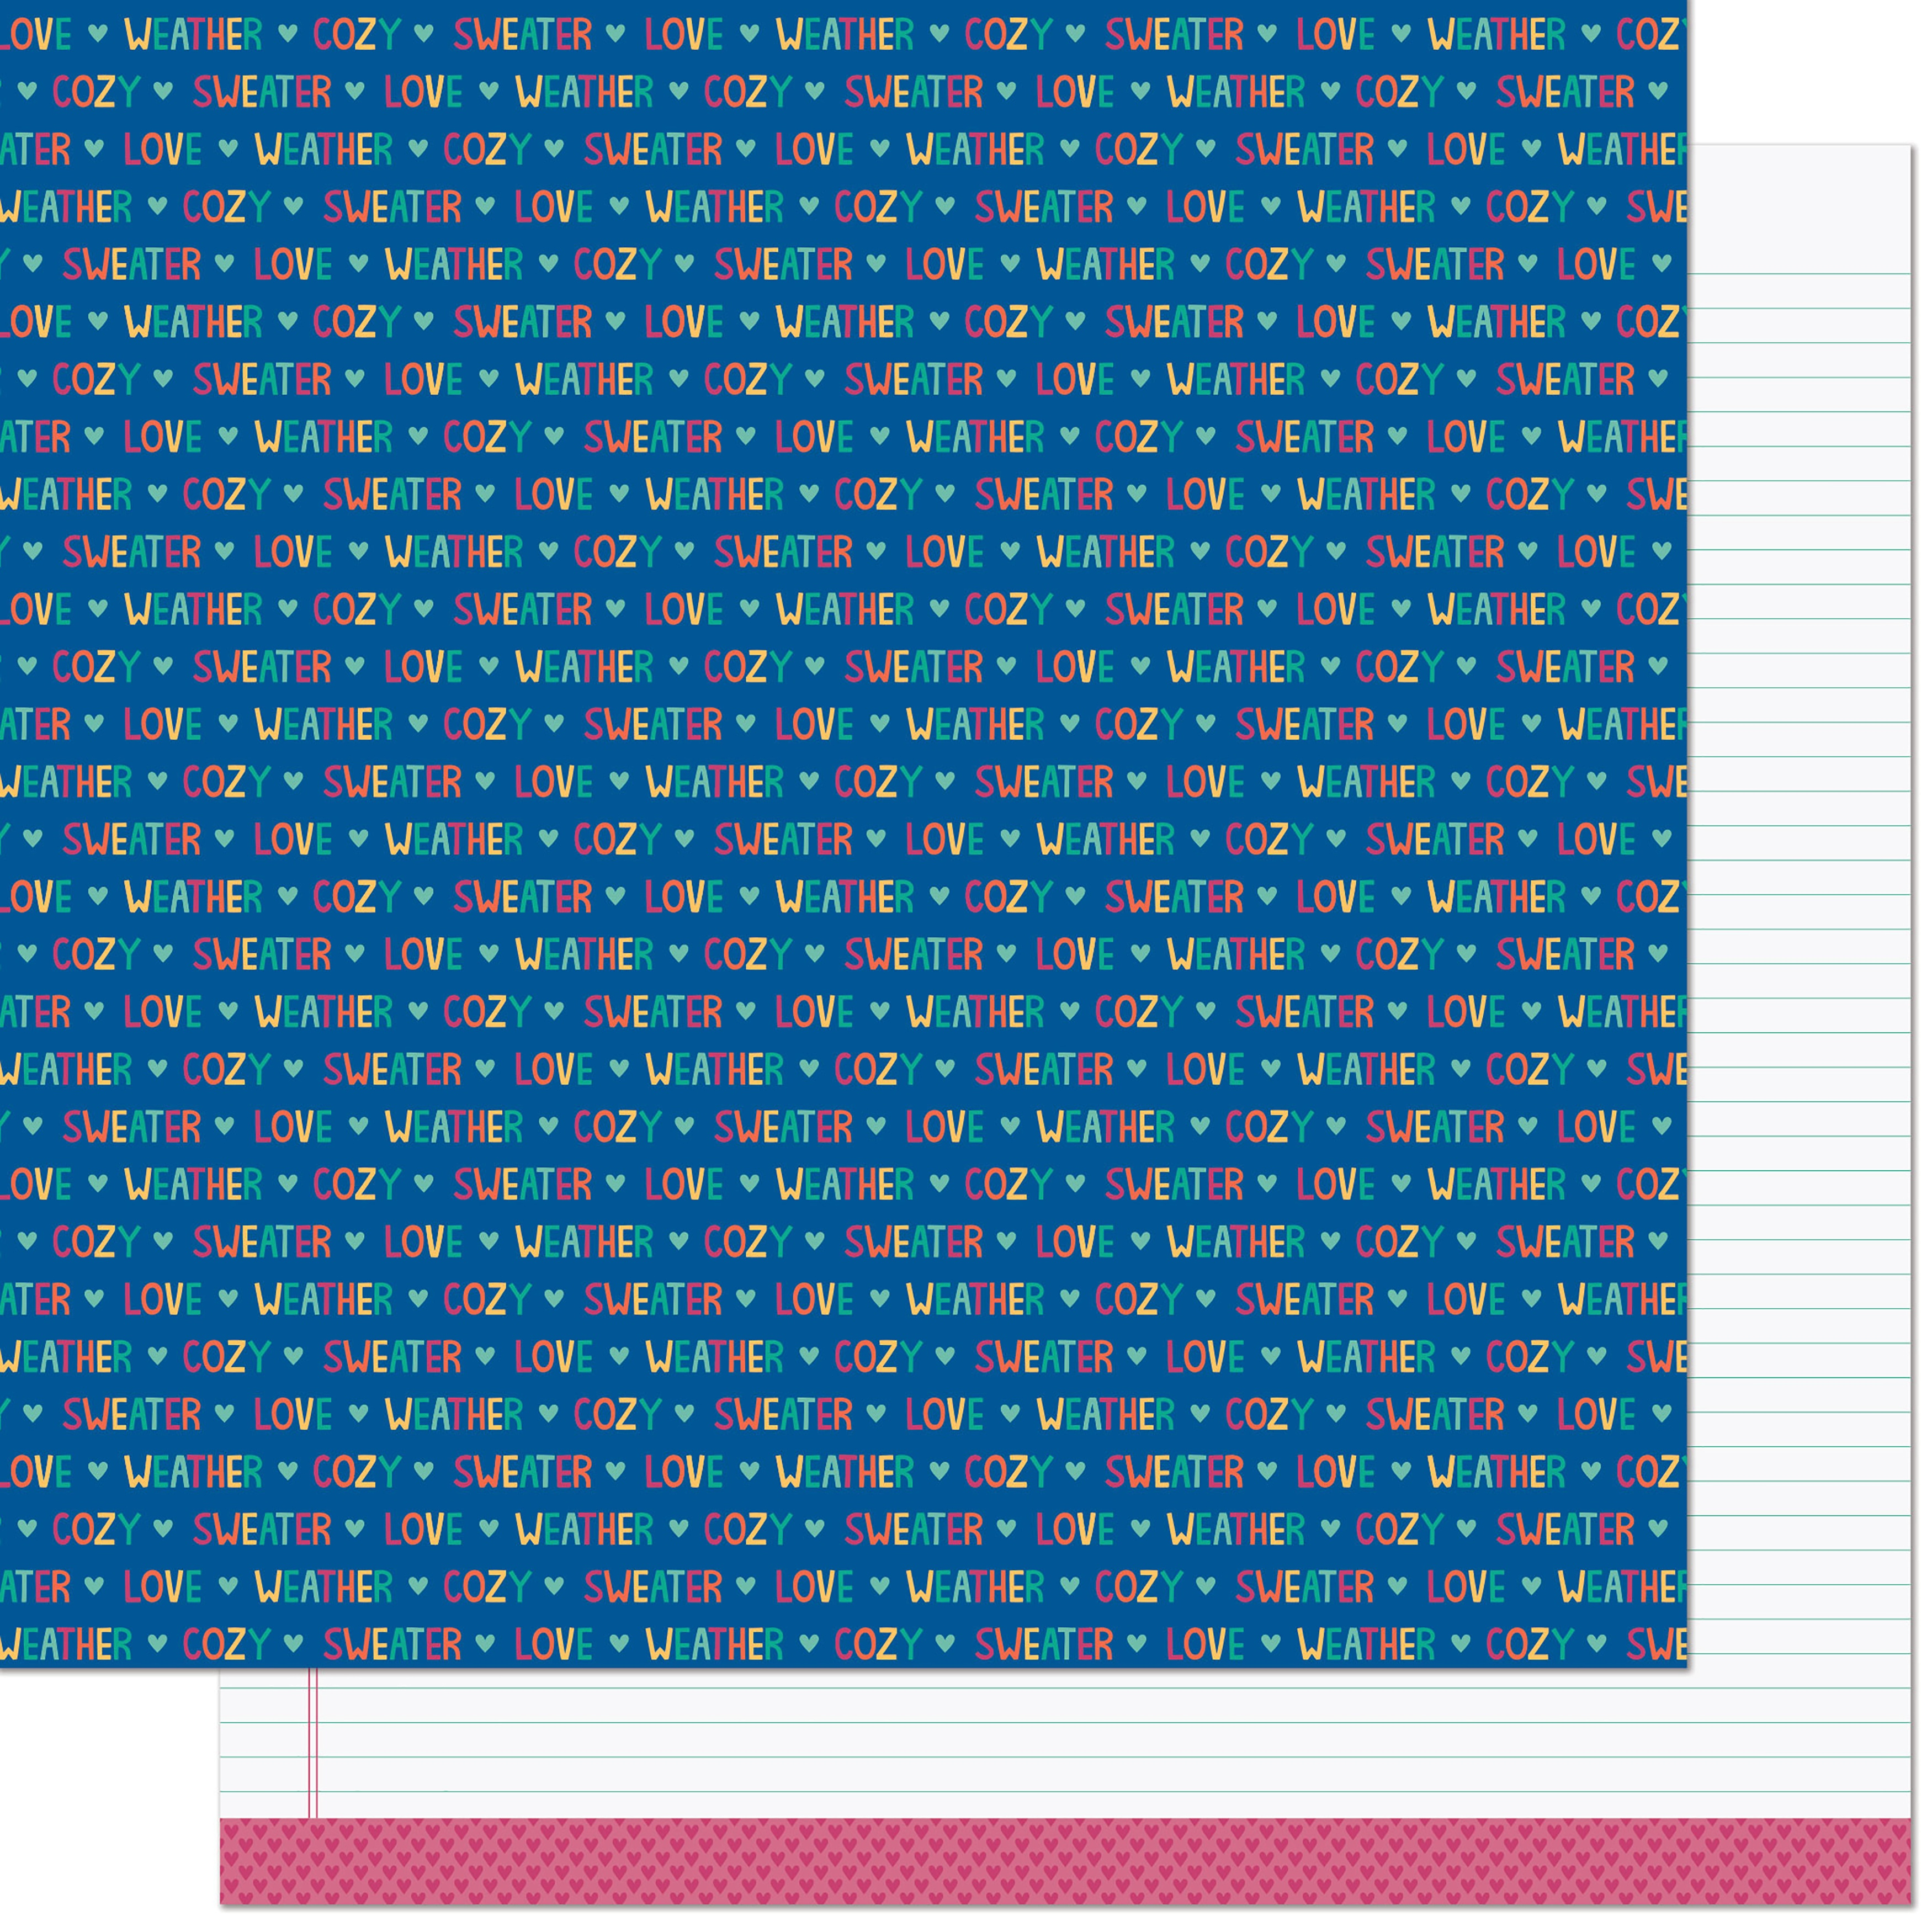 Lawn Fawn - Sweater Weather Remix  - BRISK REMIX - 12x12 Double-Sided Paper